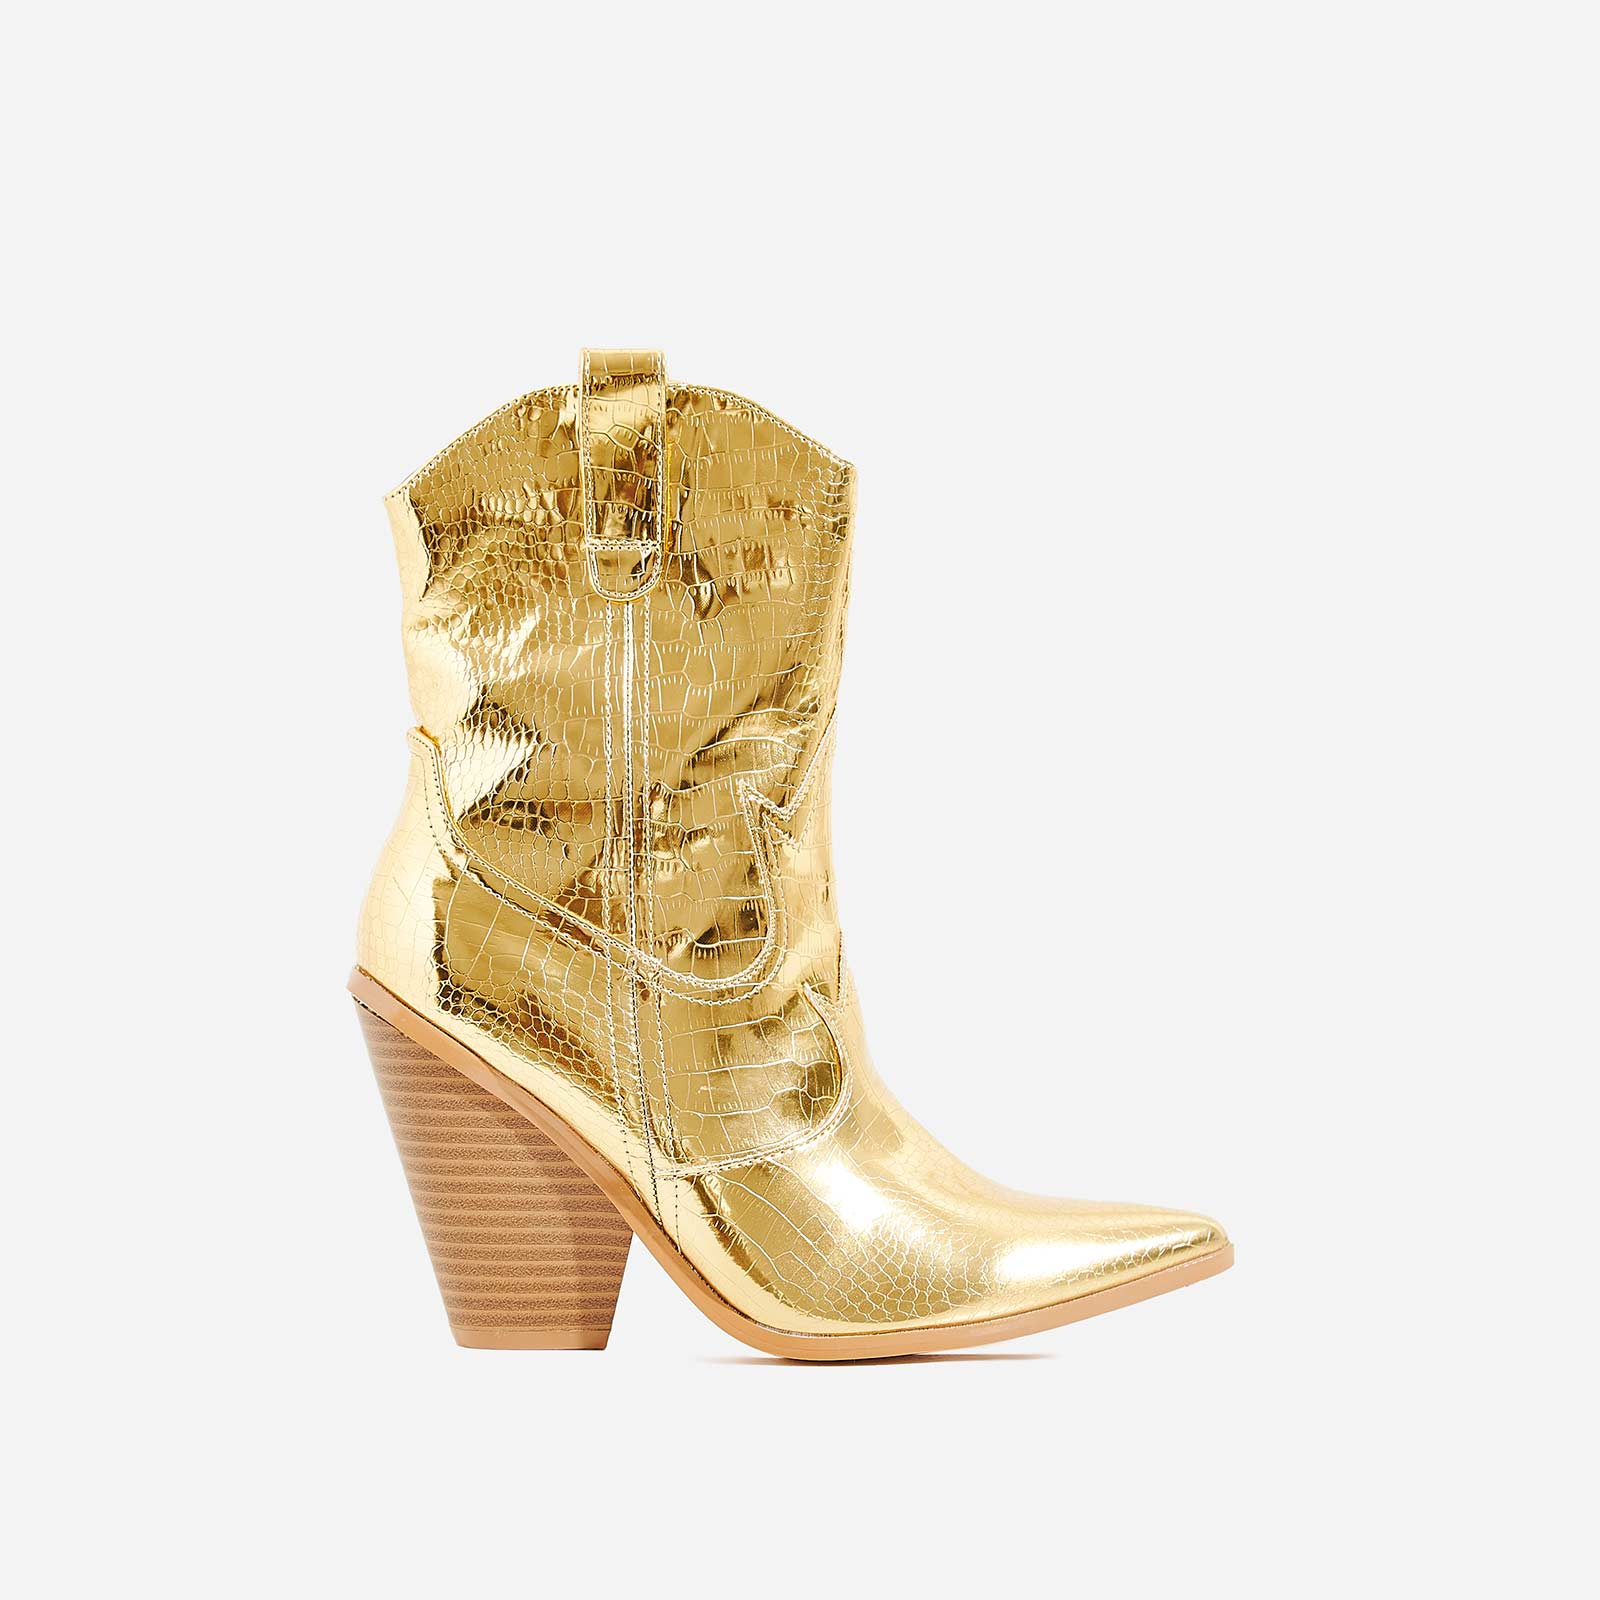 Kani Western Ankle Boot In Metallic Gold Croc Print Faux Leather